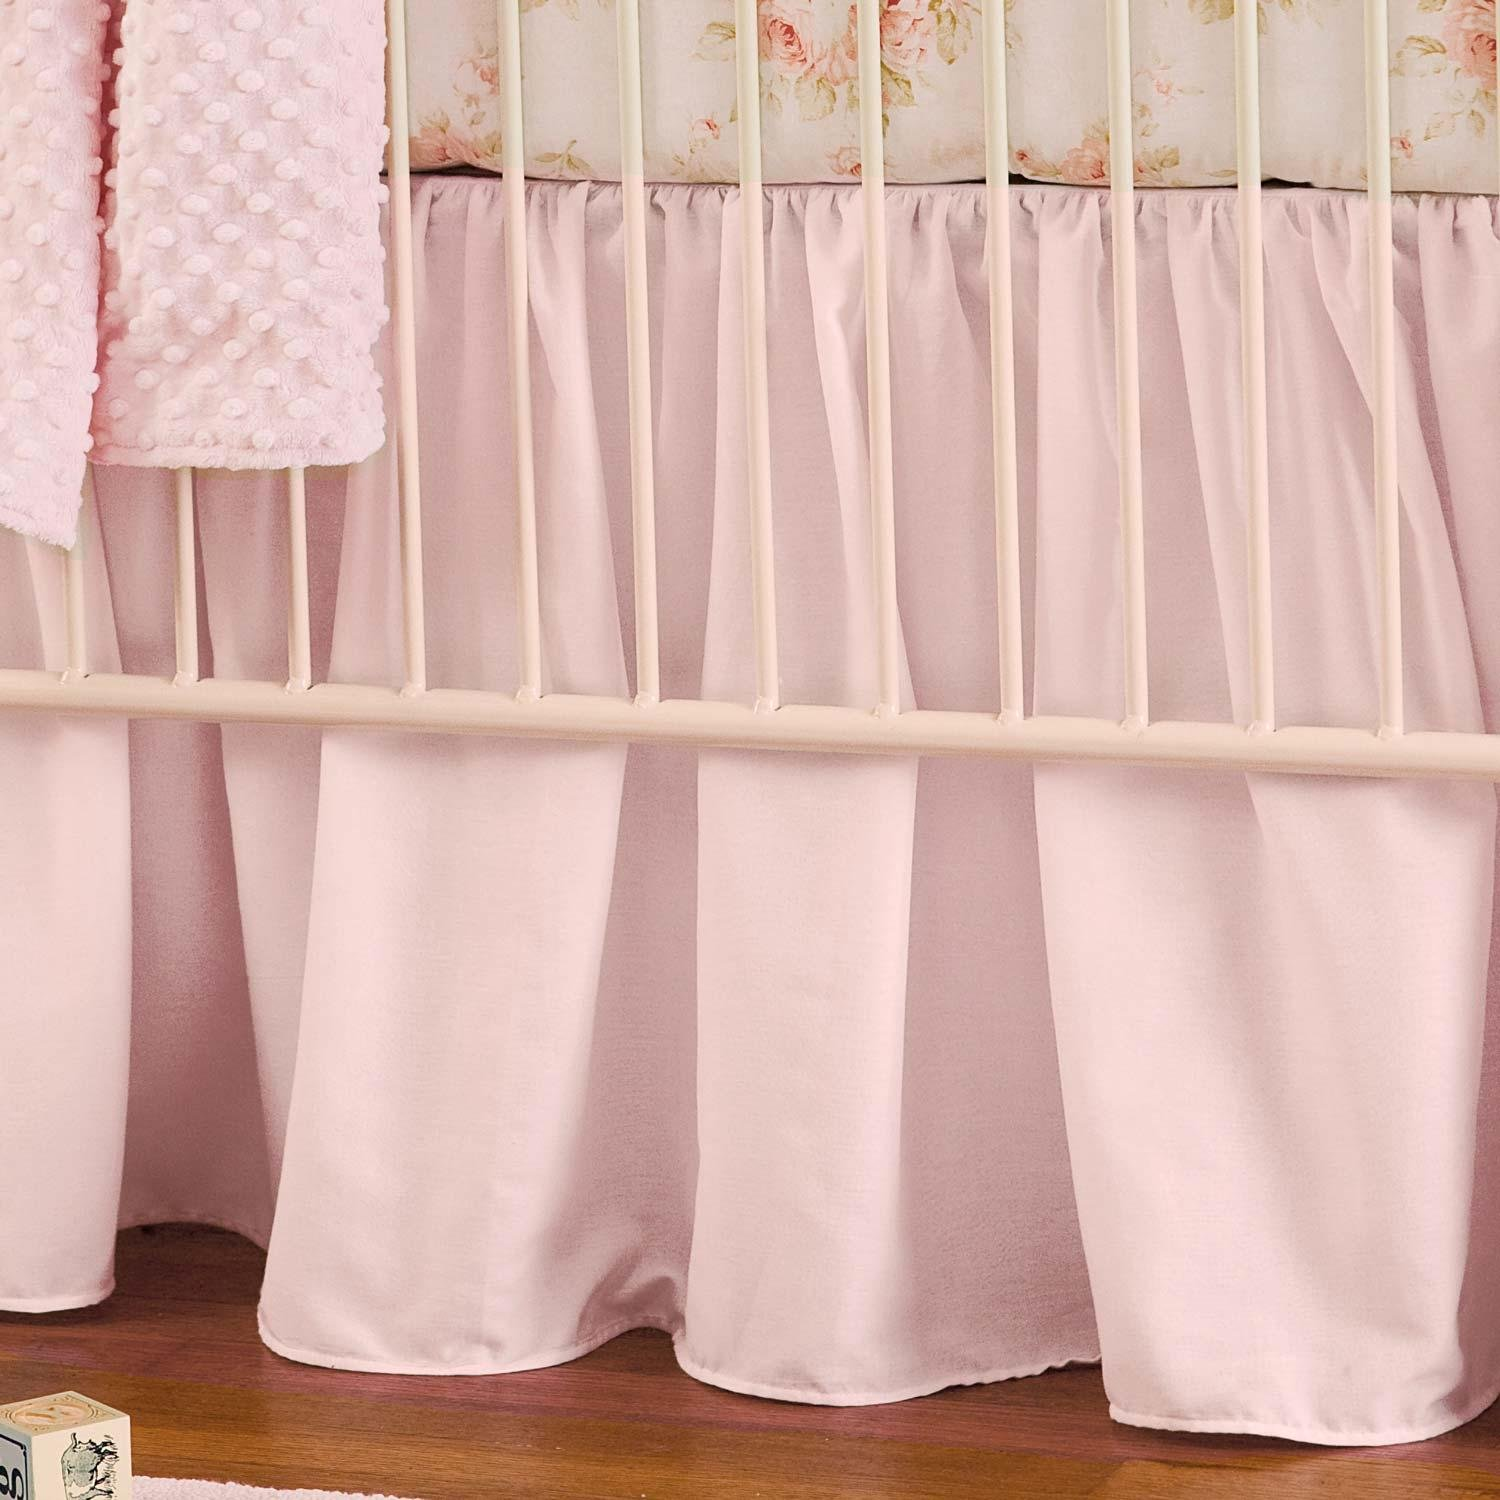 Carousel Designs Solid Pink Crib Skirt Gathered 20-Inch Length by Carousel Designs